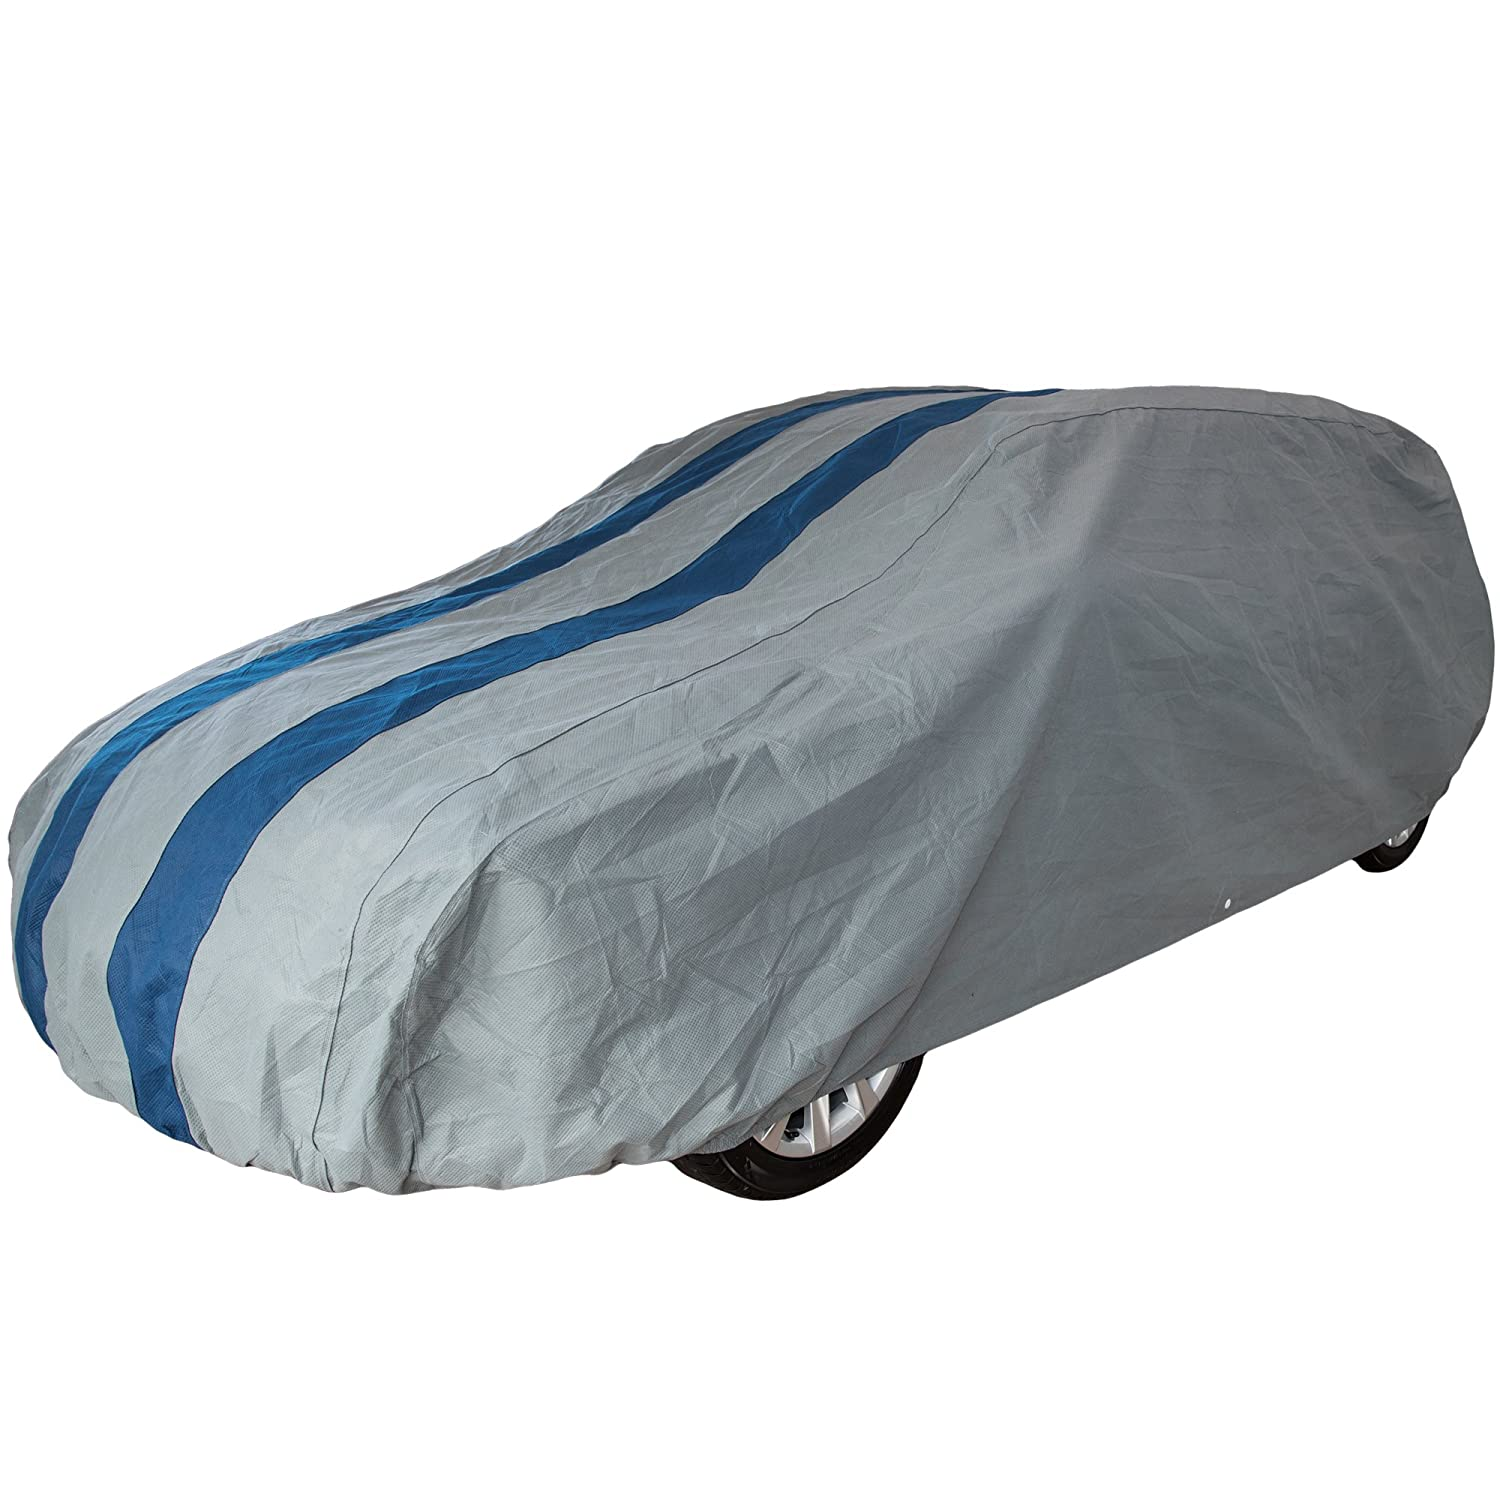 L For Wagons up to 16 ft 8 in Duck Covers Rally X Defender Station Wagon Cover